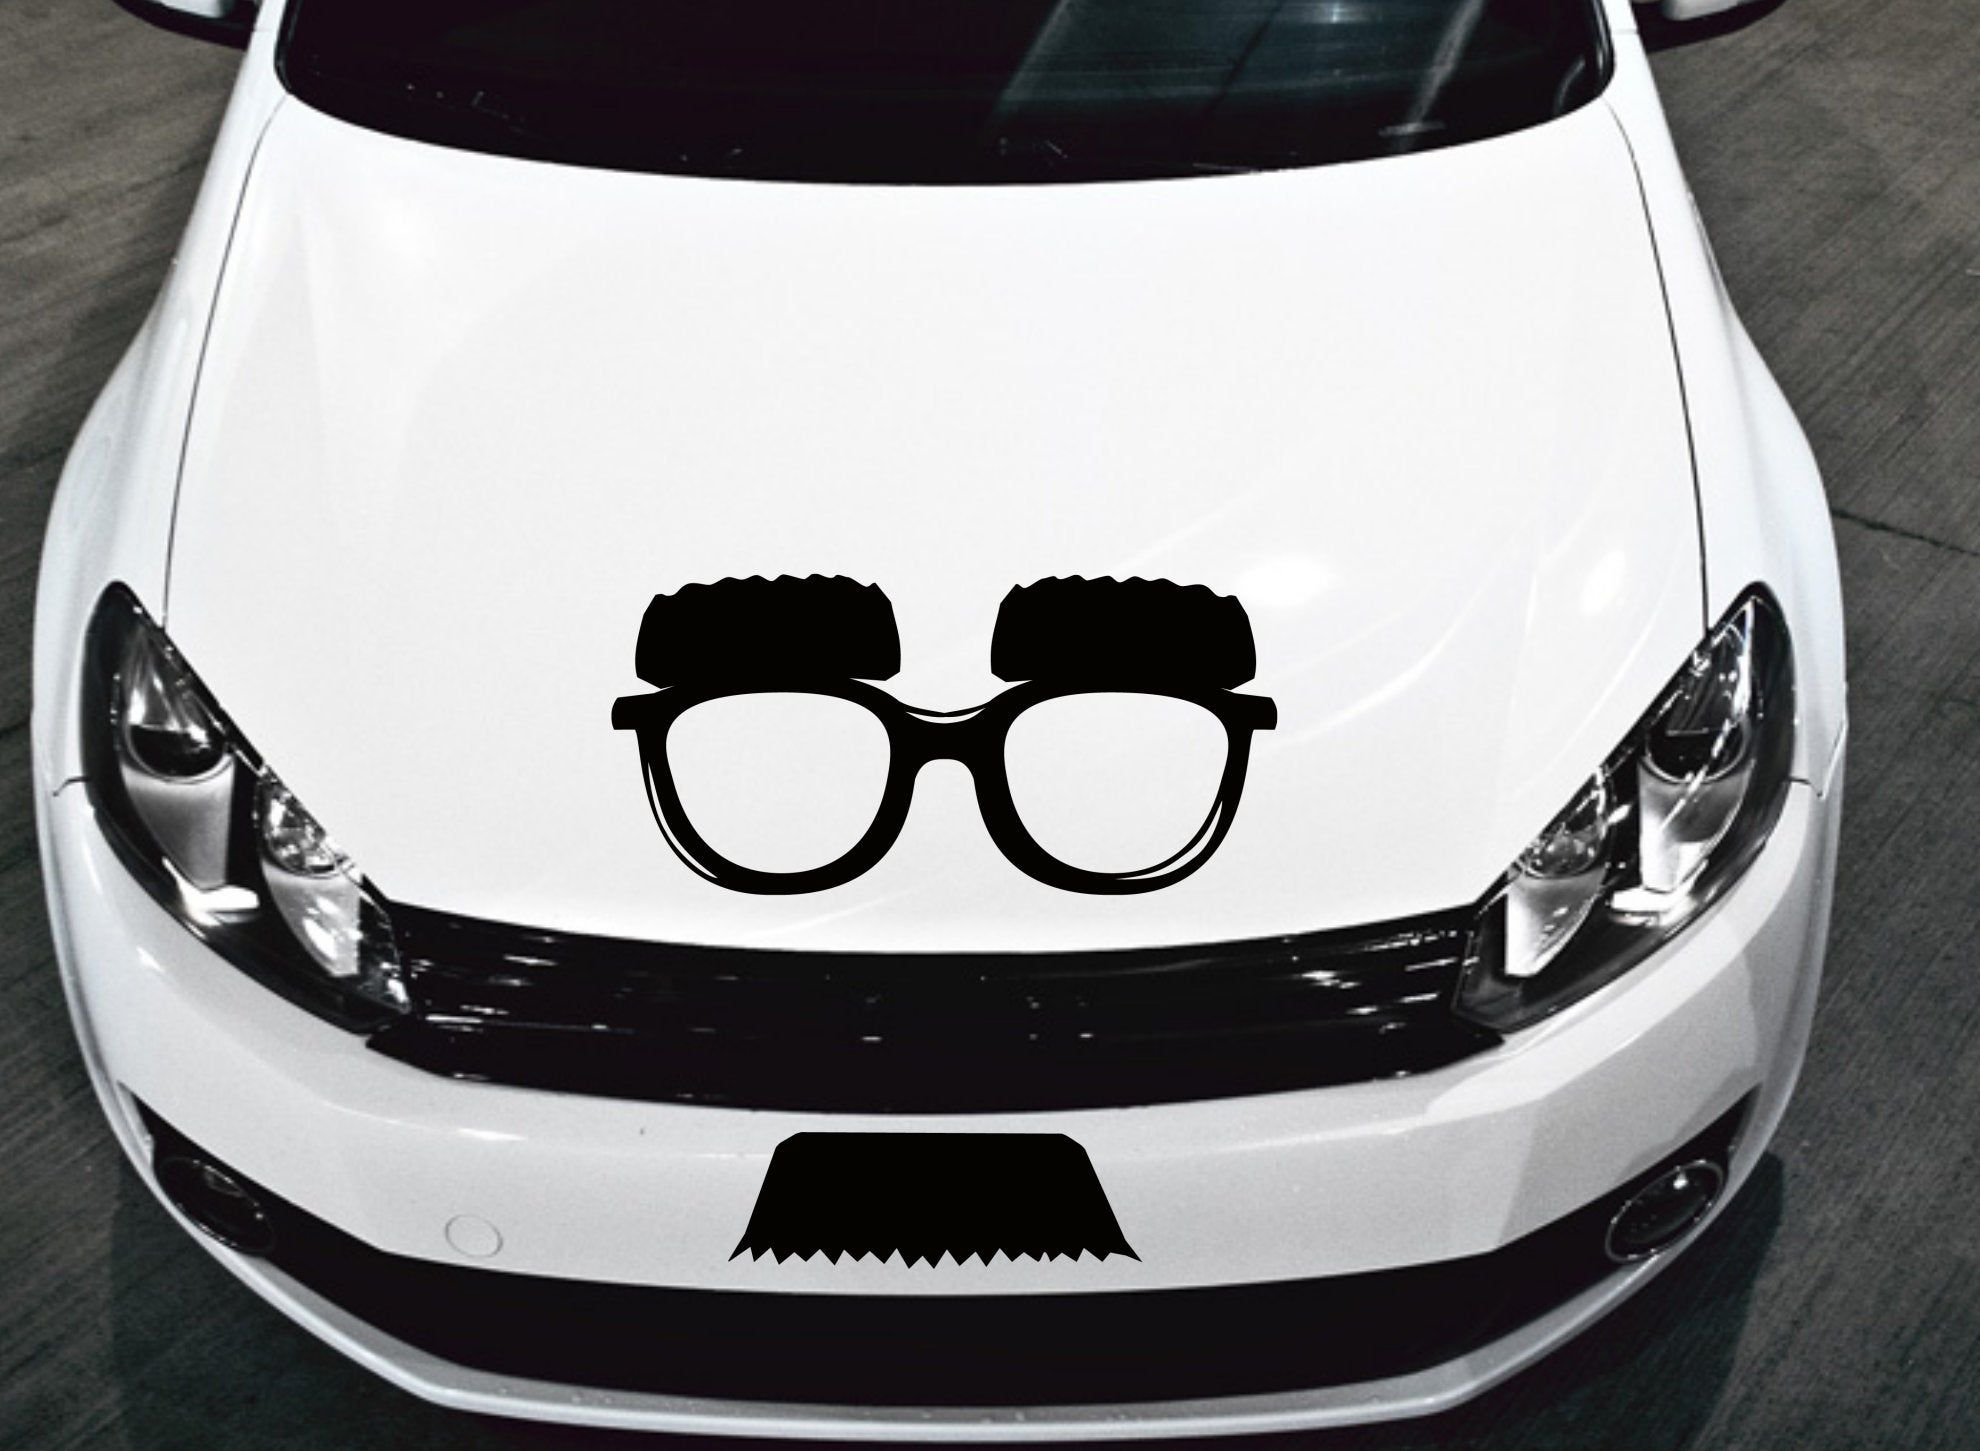 Incognito Decal Face Decal Disguise Decal Face Disguise White Vinyl